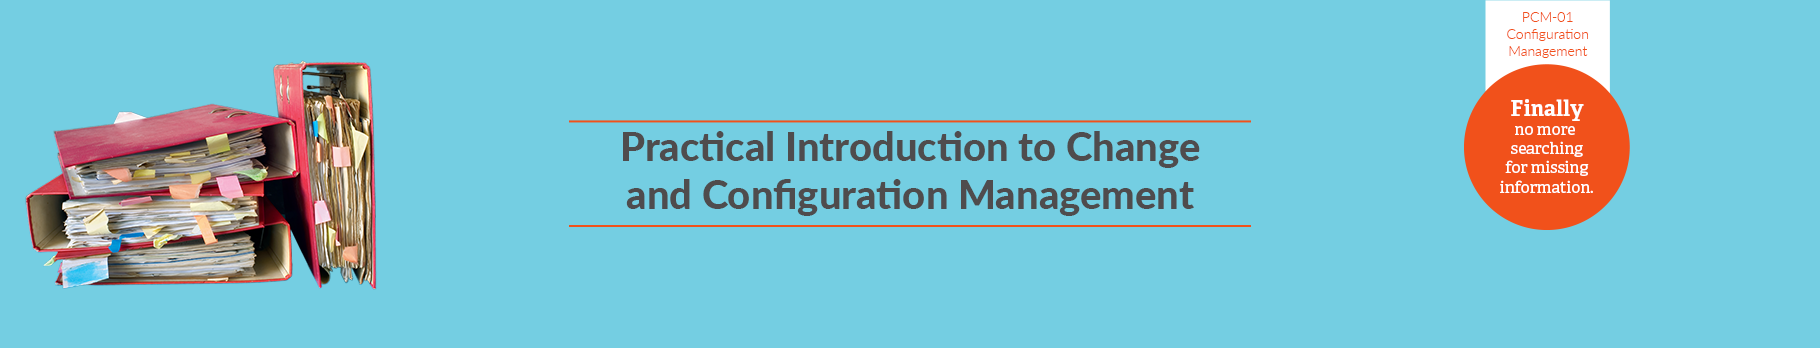 Practical Introduction to Change and Configuration Management